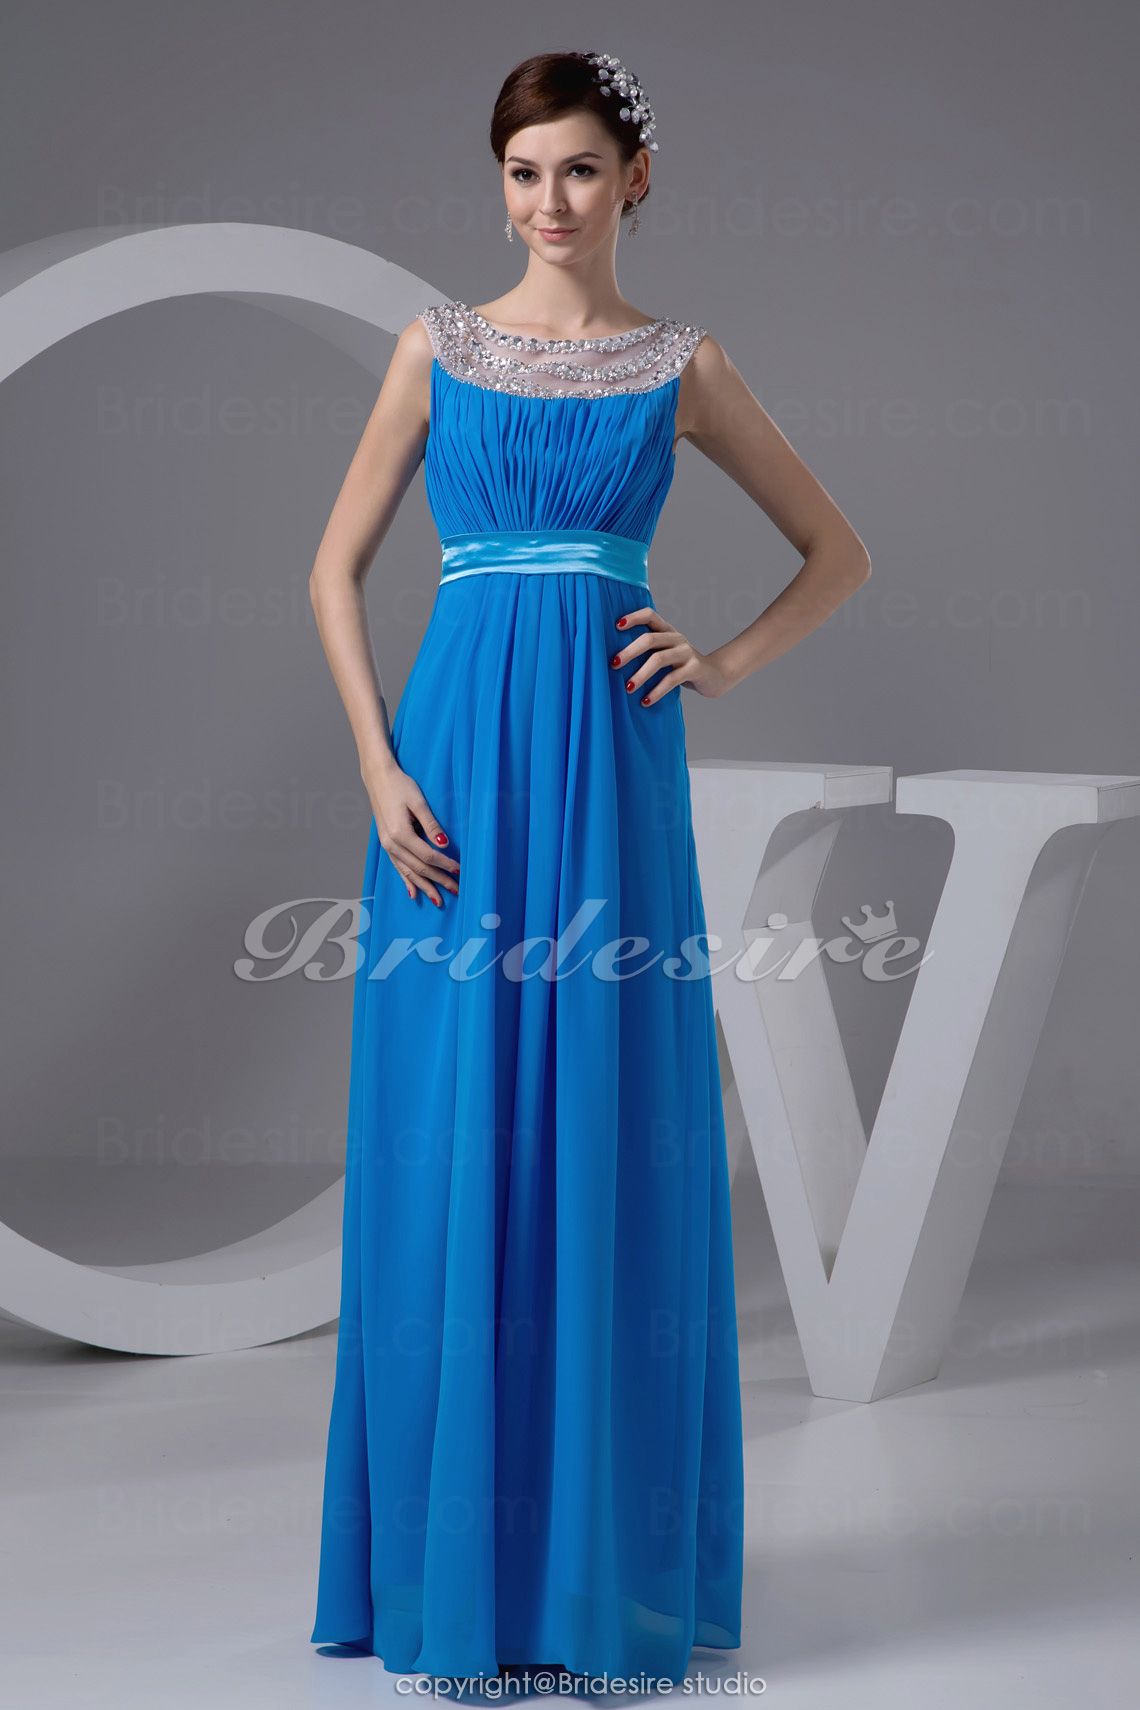 A-line Jewel Straps Floor-length Sleeveless Chiffon Dress